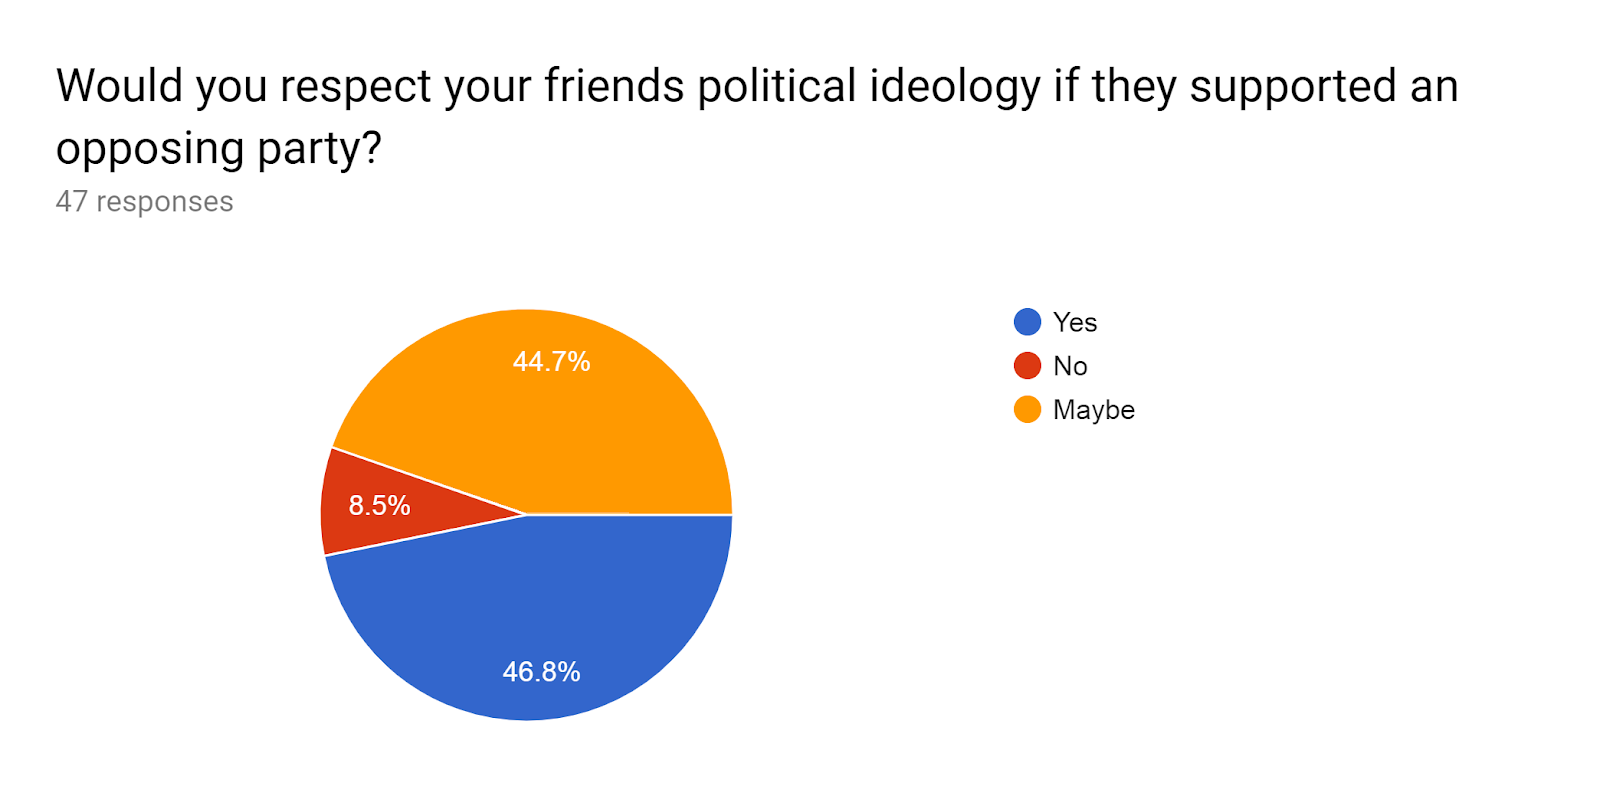 Forms response chart. Question title: Would you respect your friends political ideology if they supported an opposing party? . Number of responses: 47 responses.